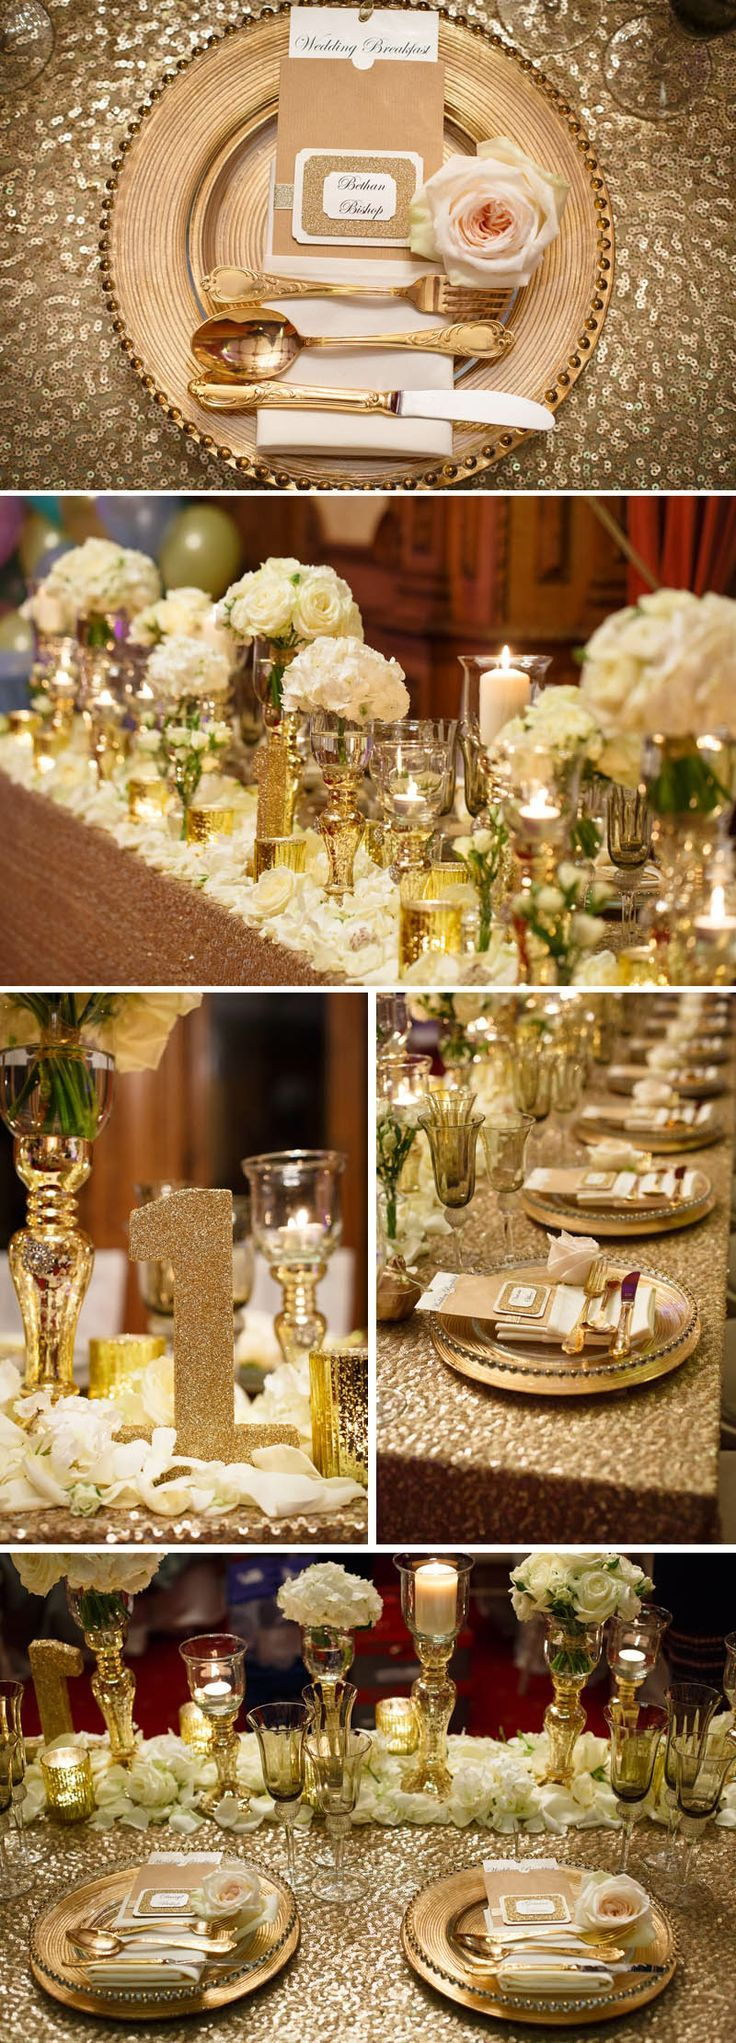 Gold table decor is still hot #wedding #trends #OliverINK on Etsy